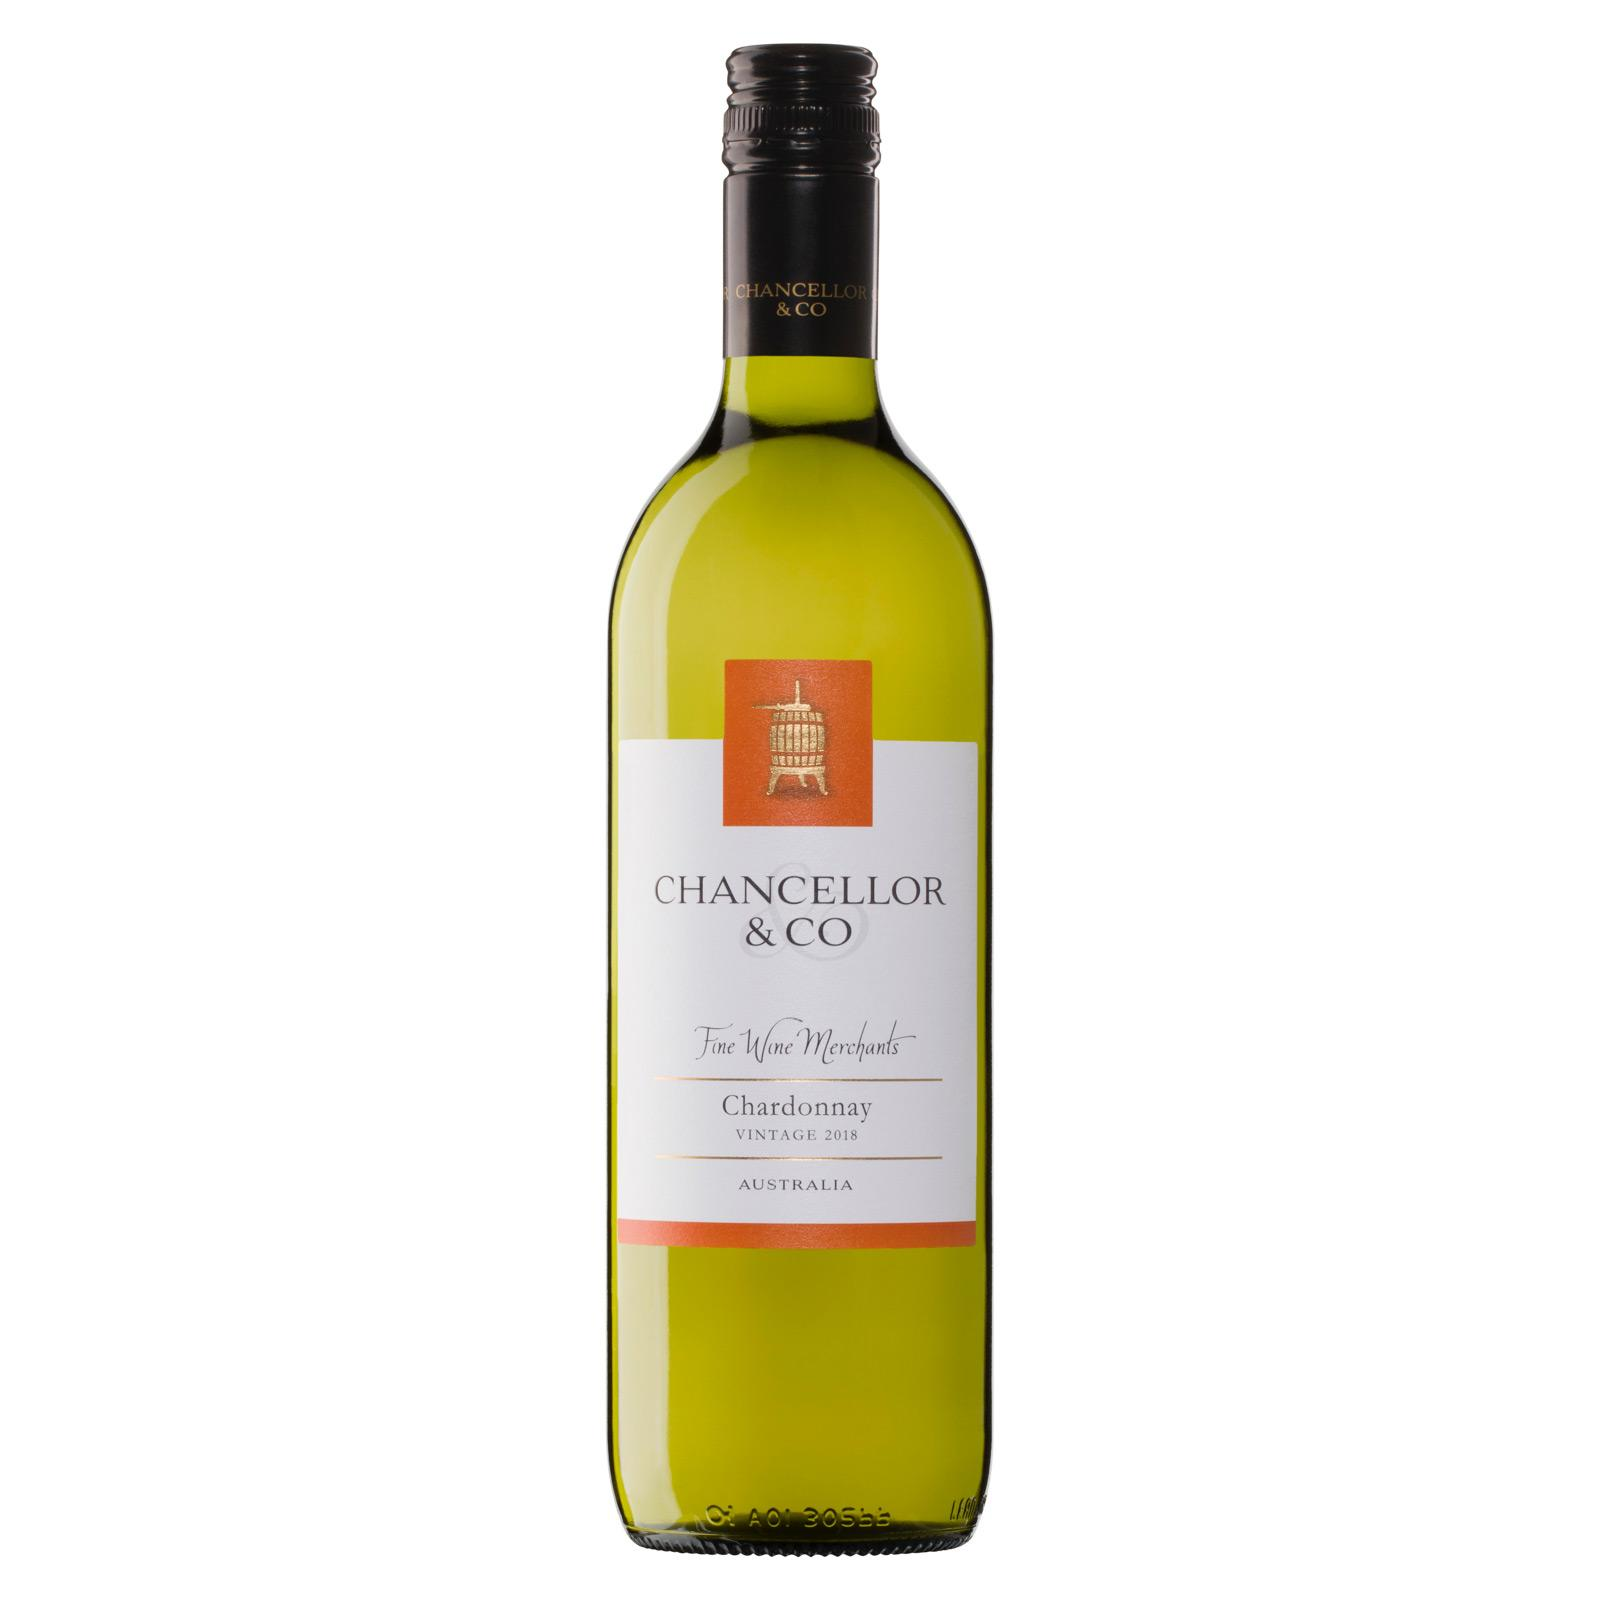 Chancellor and Co Chardonnay White Wine Australia